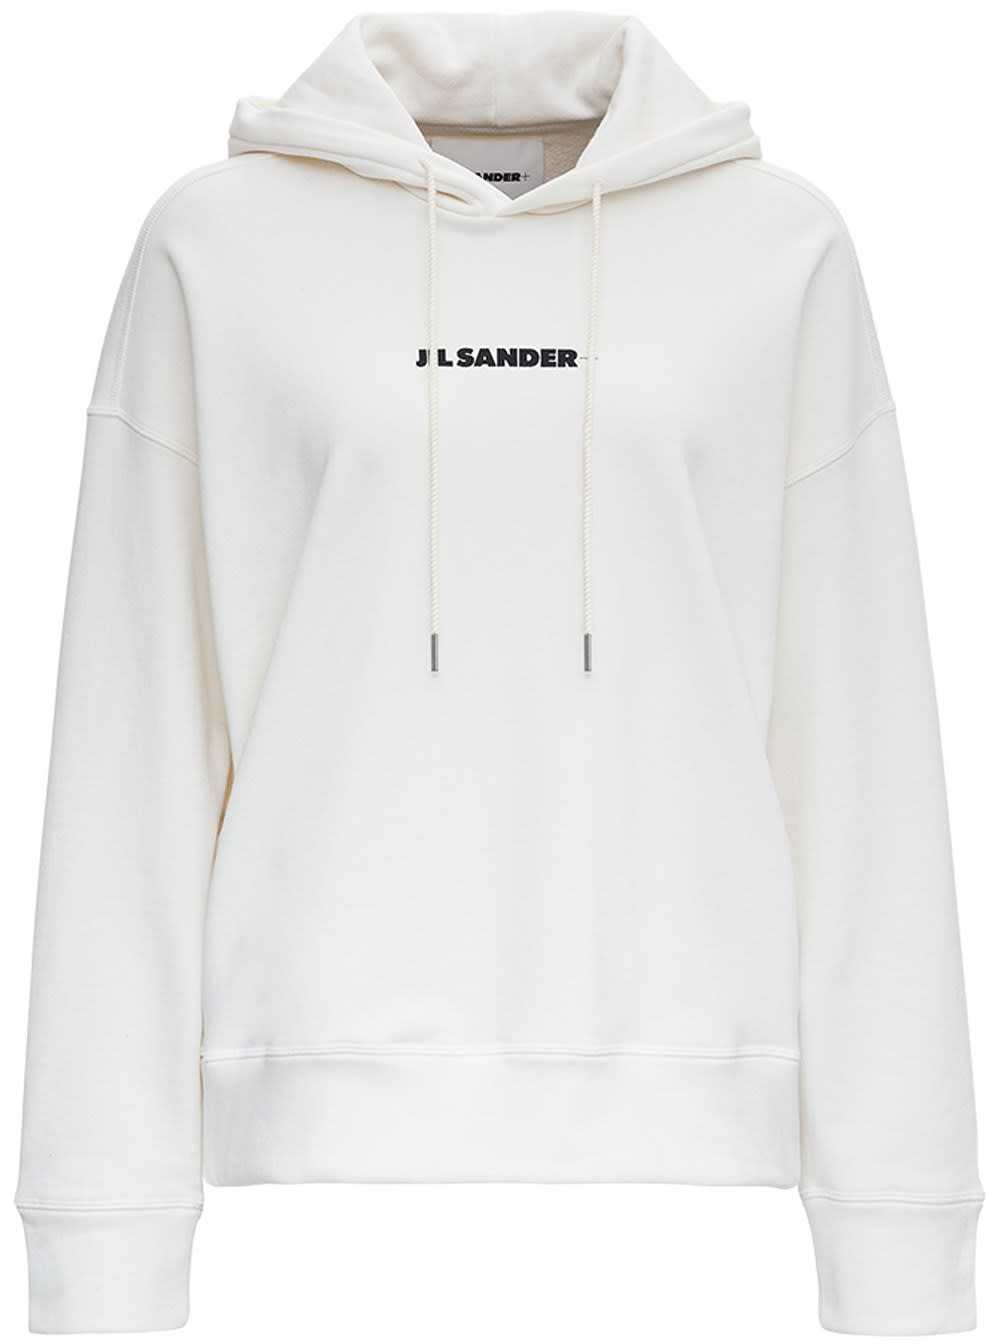 Jil Sander Cottons SWEATERSHIRT W/HOOD LS IN ORGANIC COTTON FRENCH TERRY